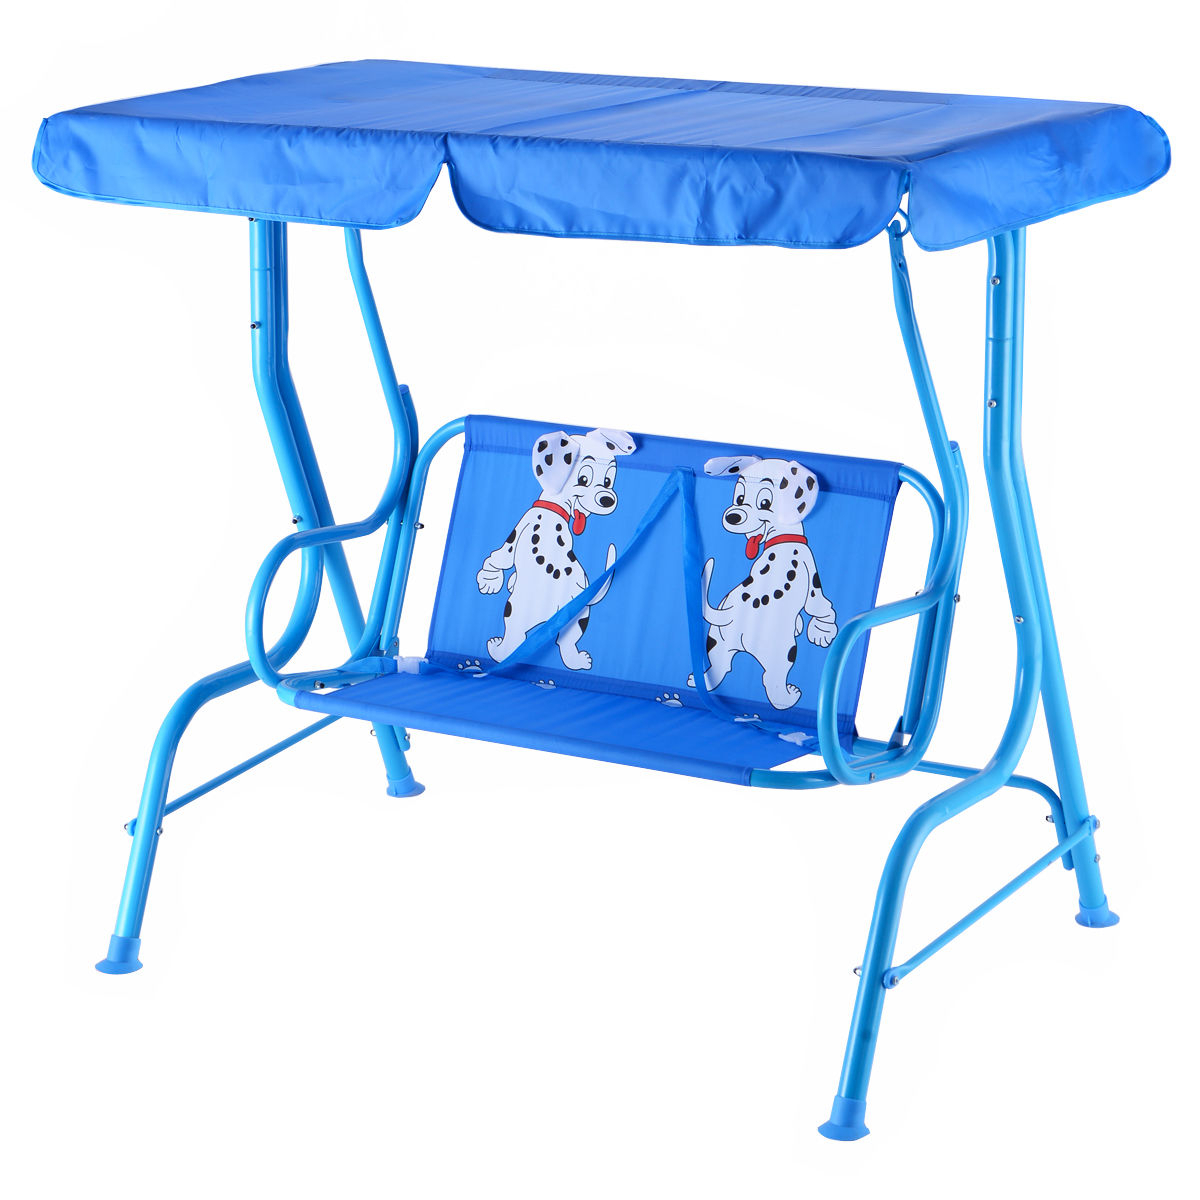 Canopy Porch Swings For Most Up To Date Outdoor Kids Patio Swing Bench With Canopy 2 Seats (Gallery 21 of 30)